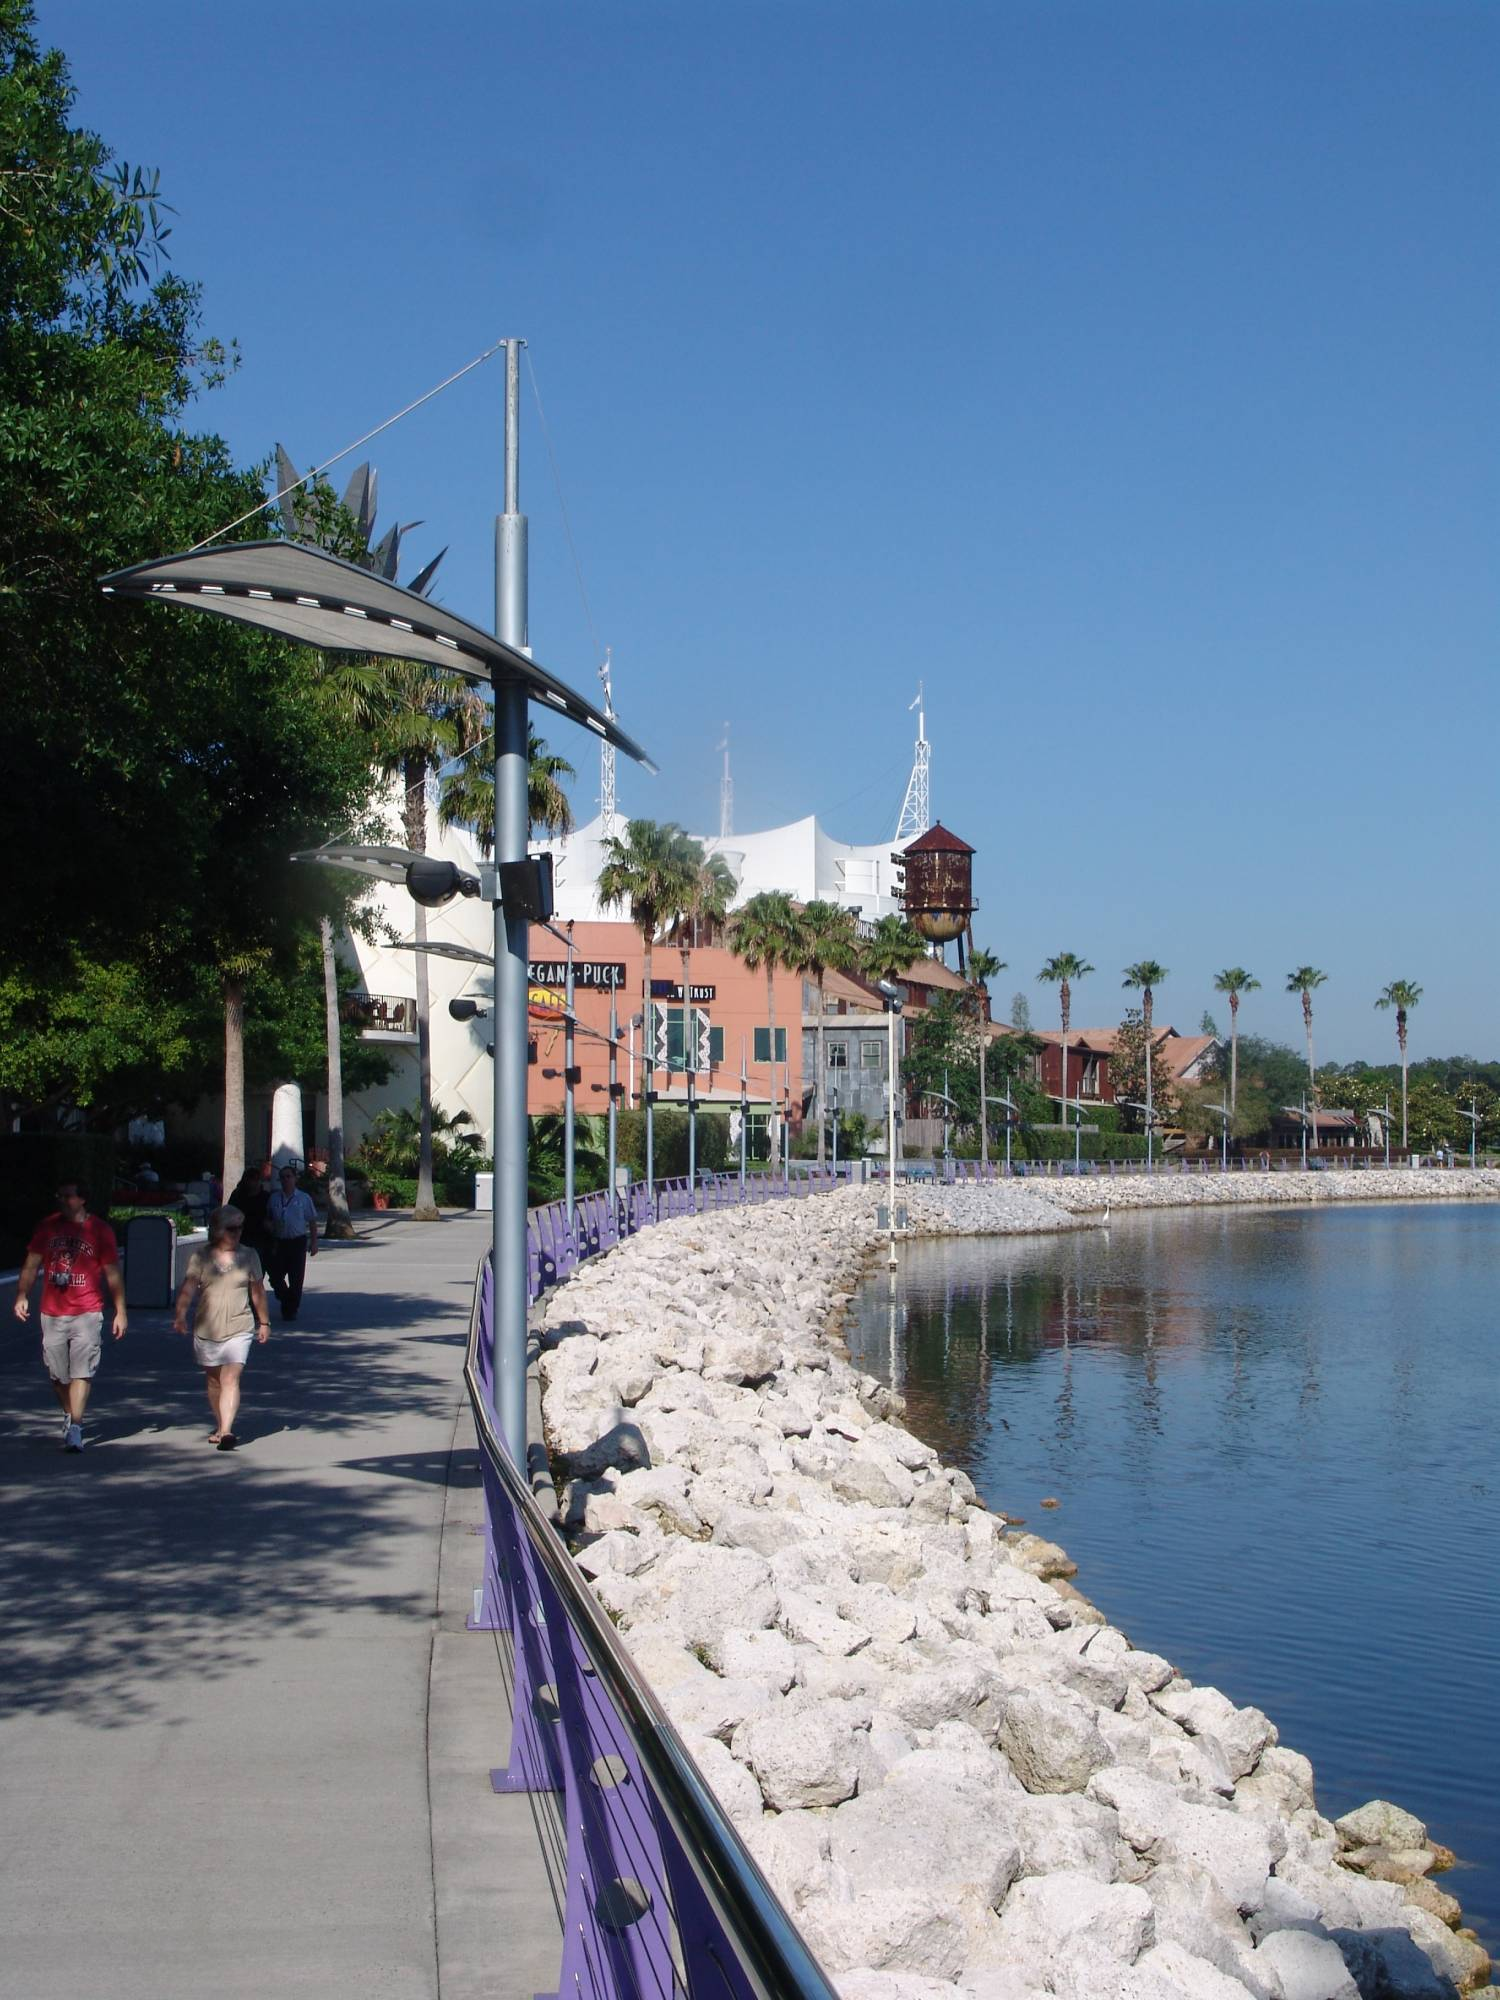 Downtown Disney - West Side waterfront